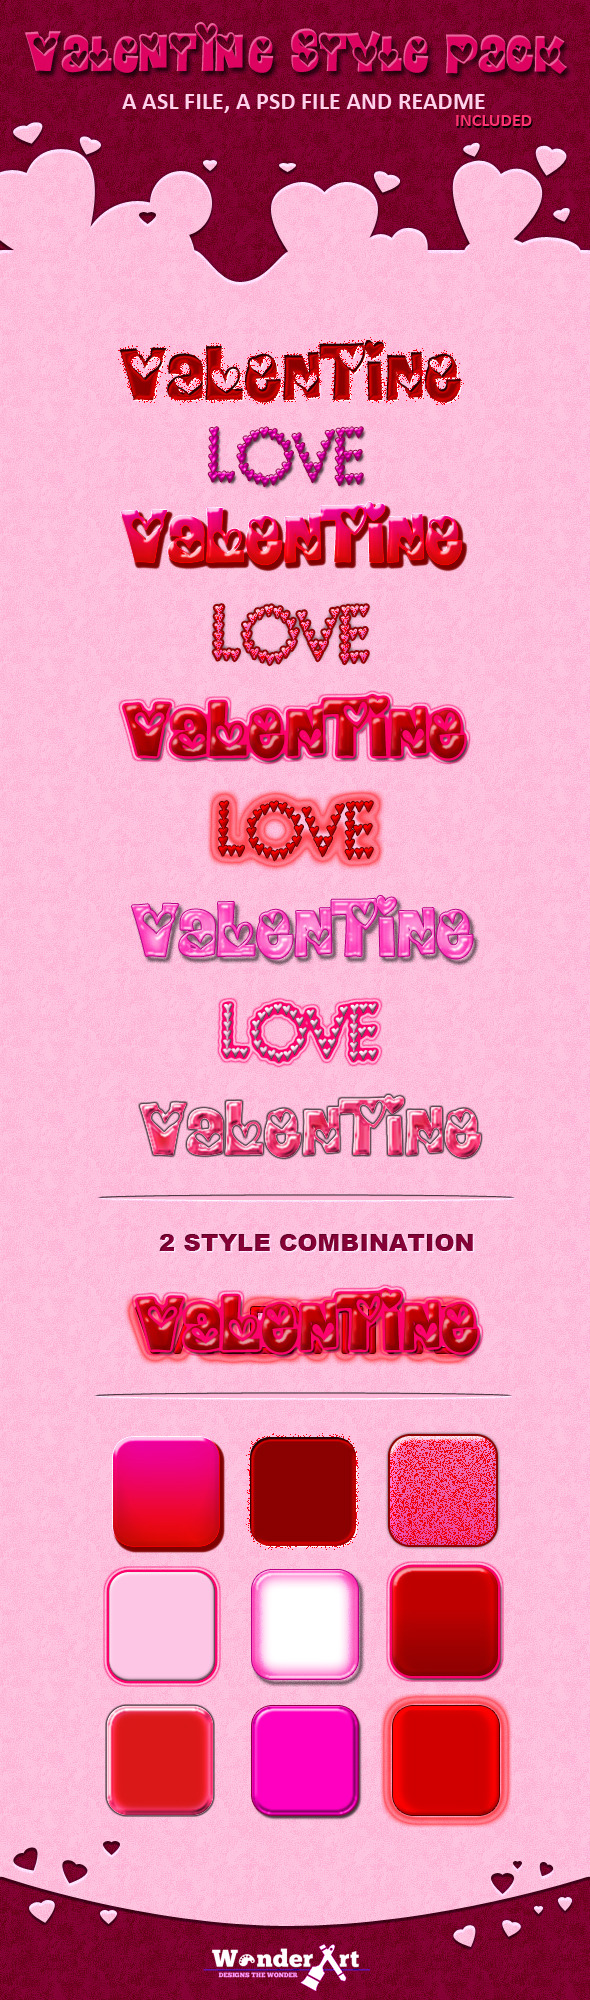 Valentine Style Pack - Text Effects Styles